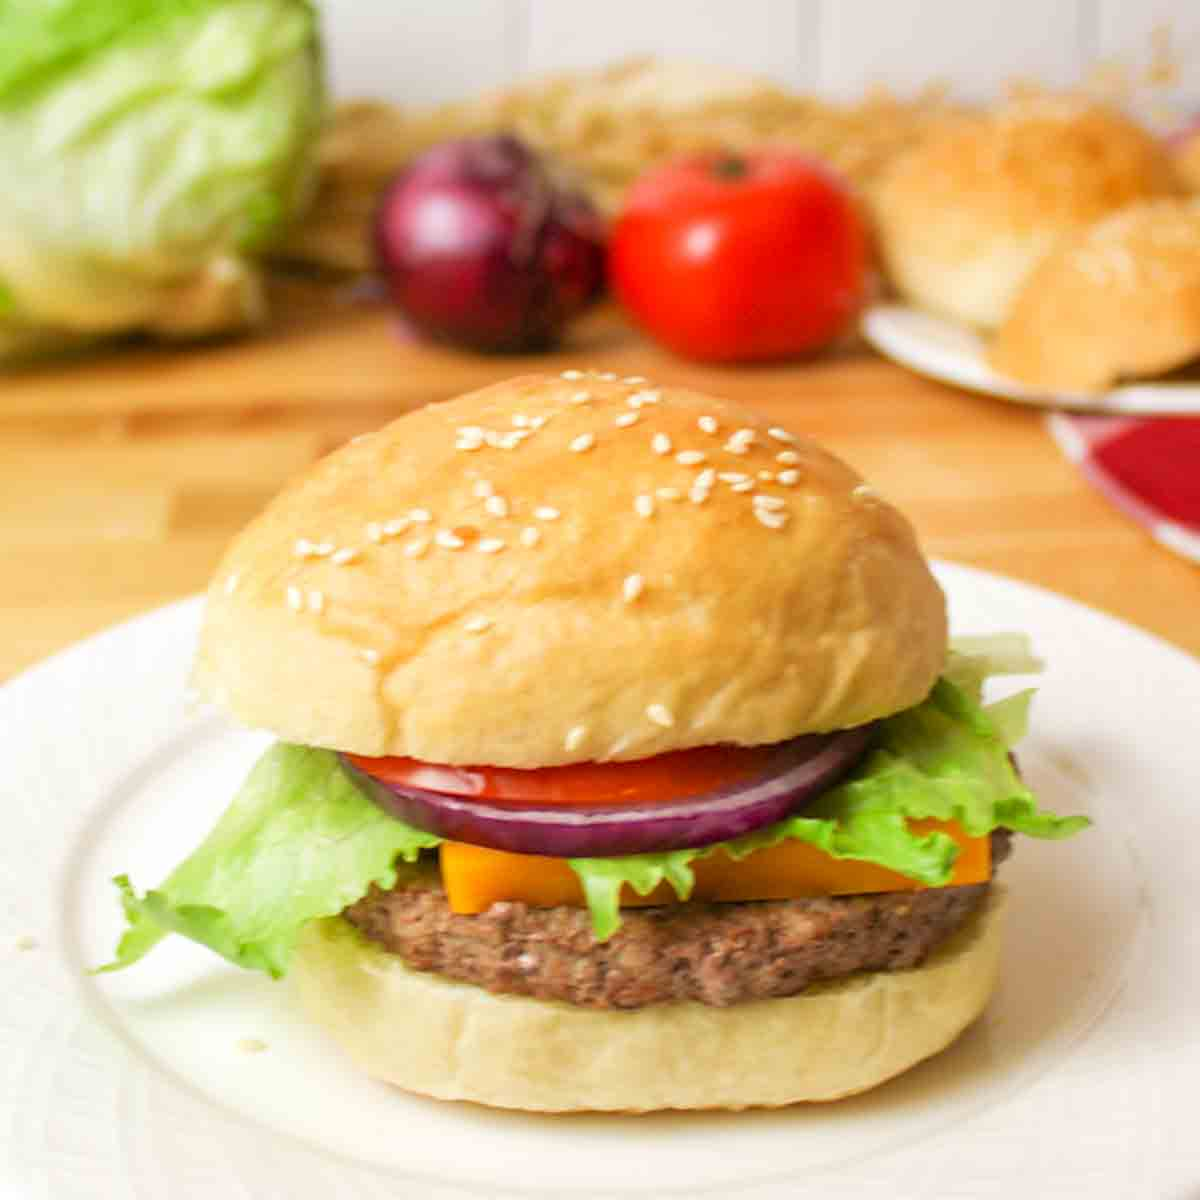 an upclose view of a fully assembled burger with homemade buns